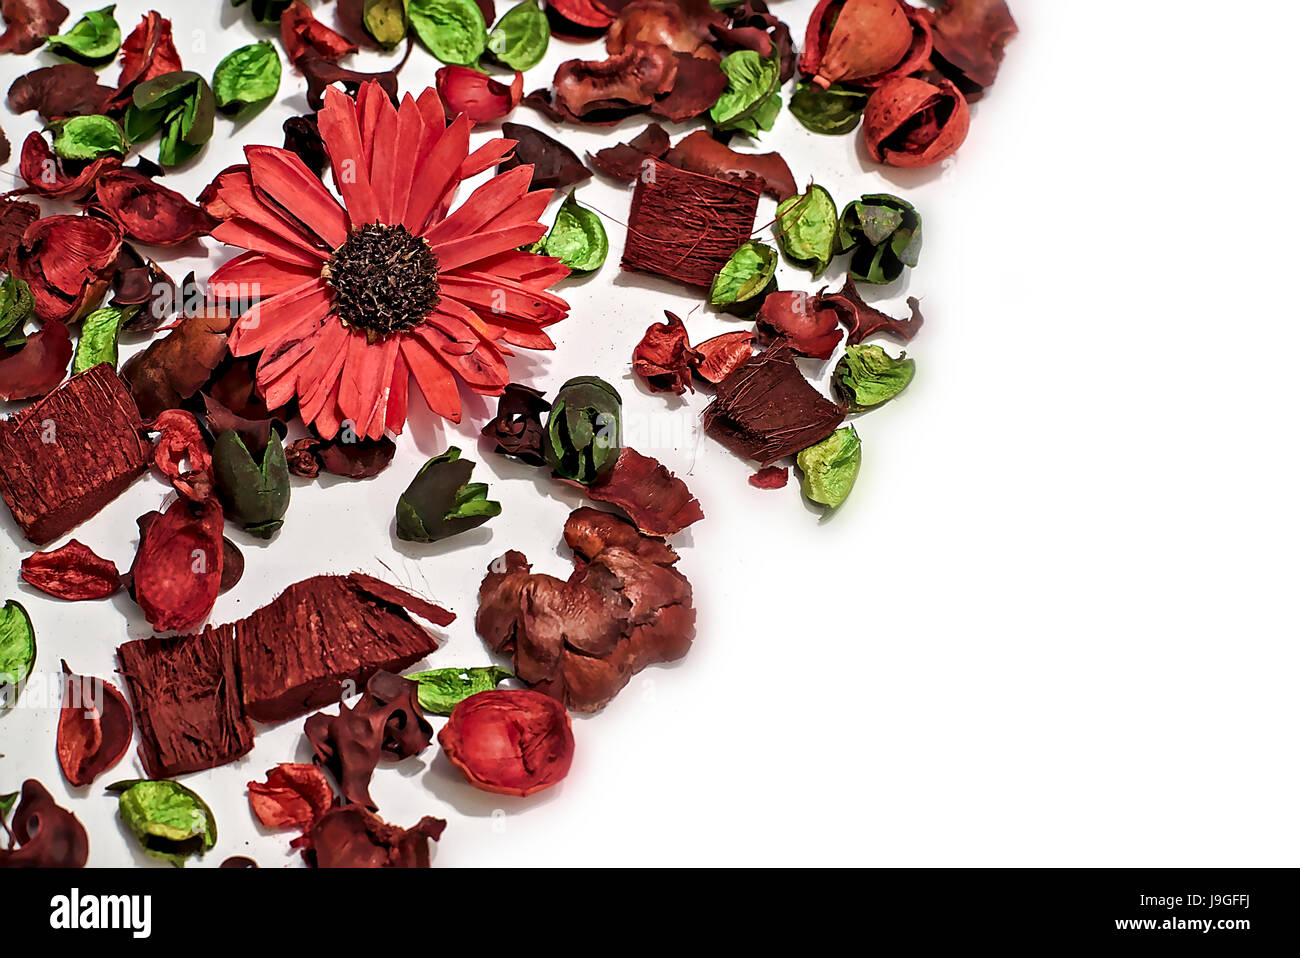 Dry flowers and leafs composing a nice texture with red and green as predominant colors and blurred white as background - Stock Image